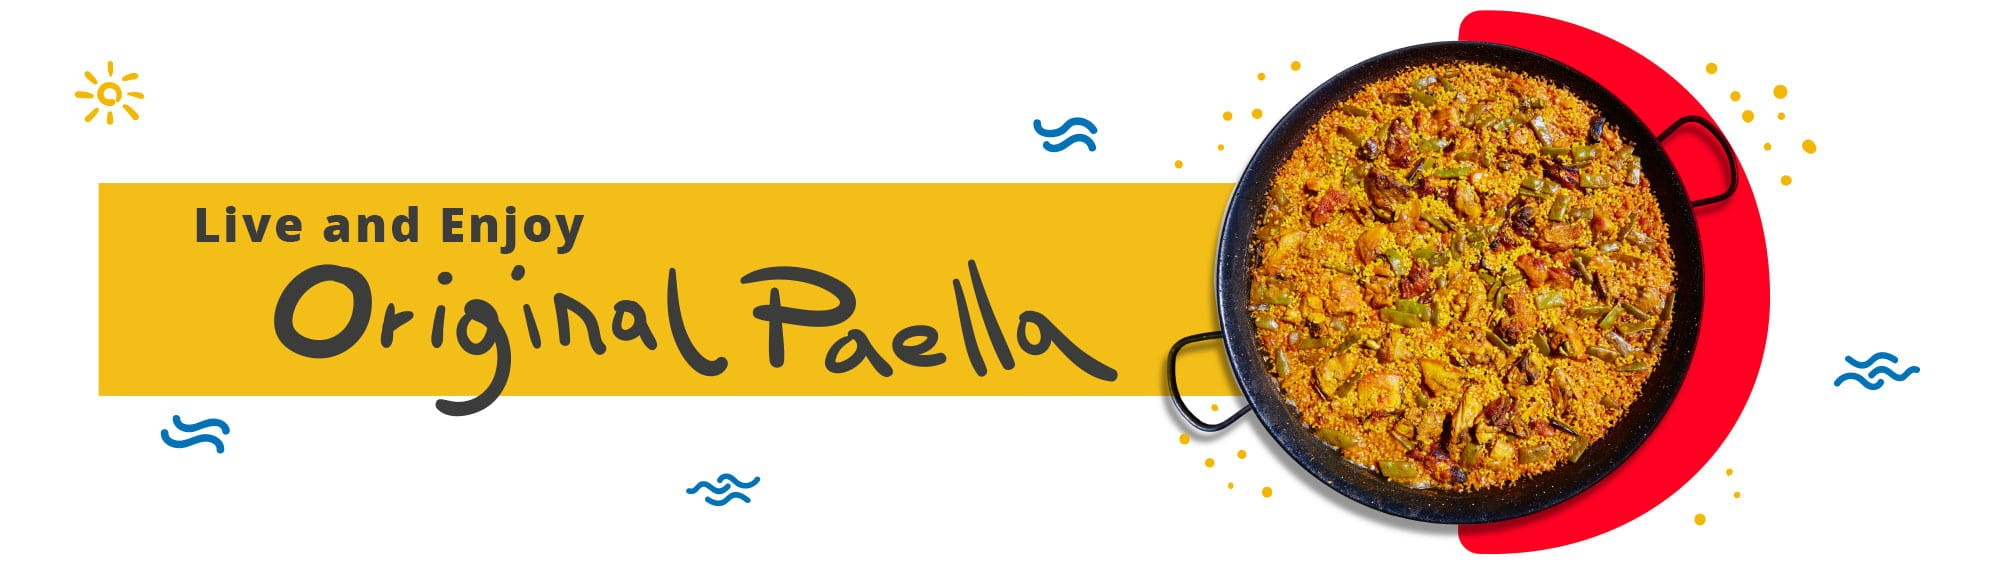 the best paella equipment from Spain paella burners, stands, paella spoons, paella lids, paella windshields all in ours Paella Packs